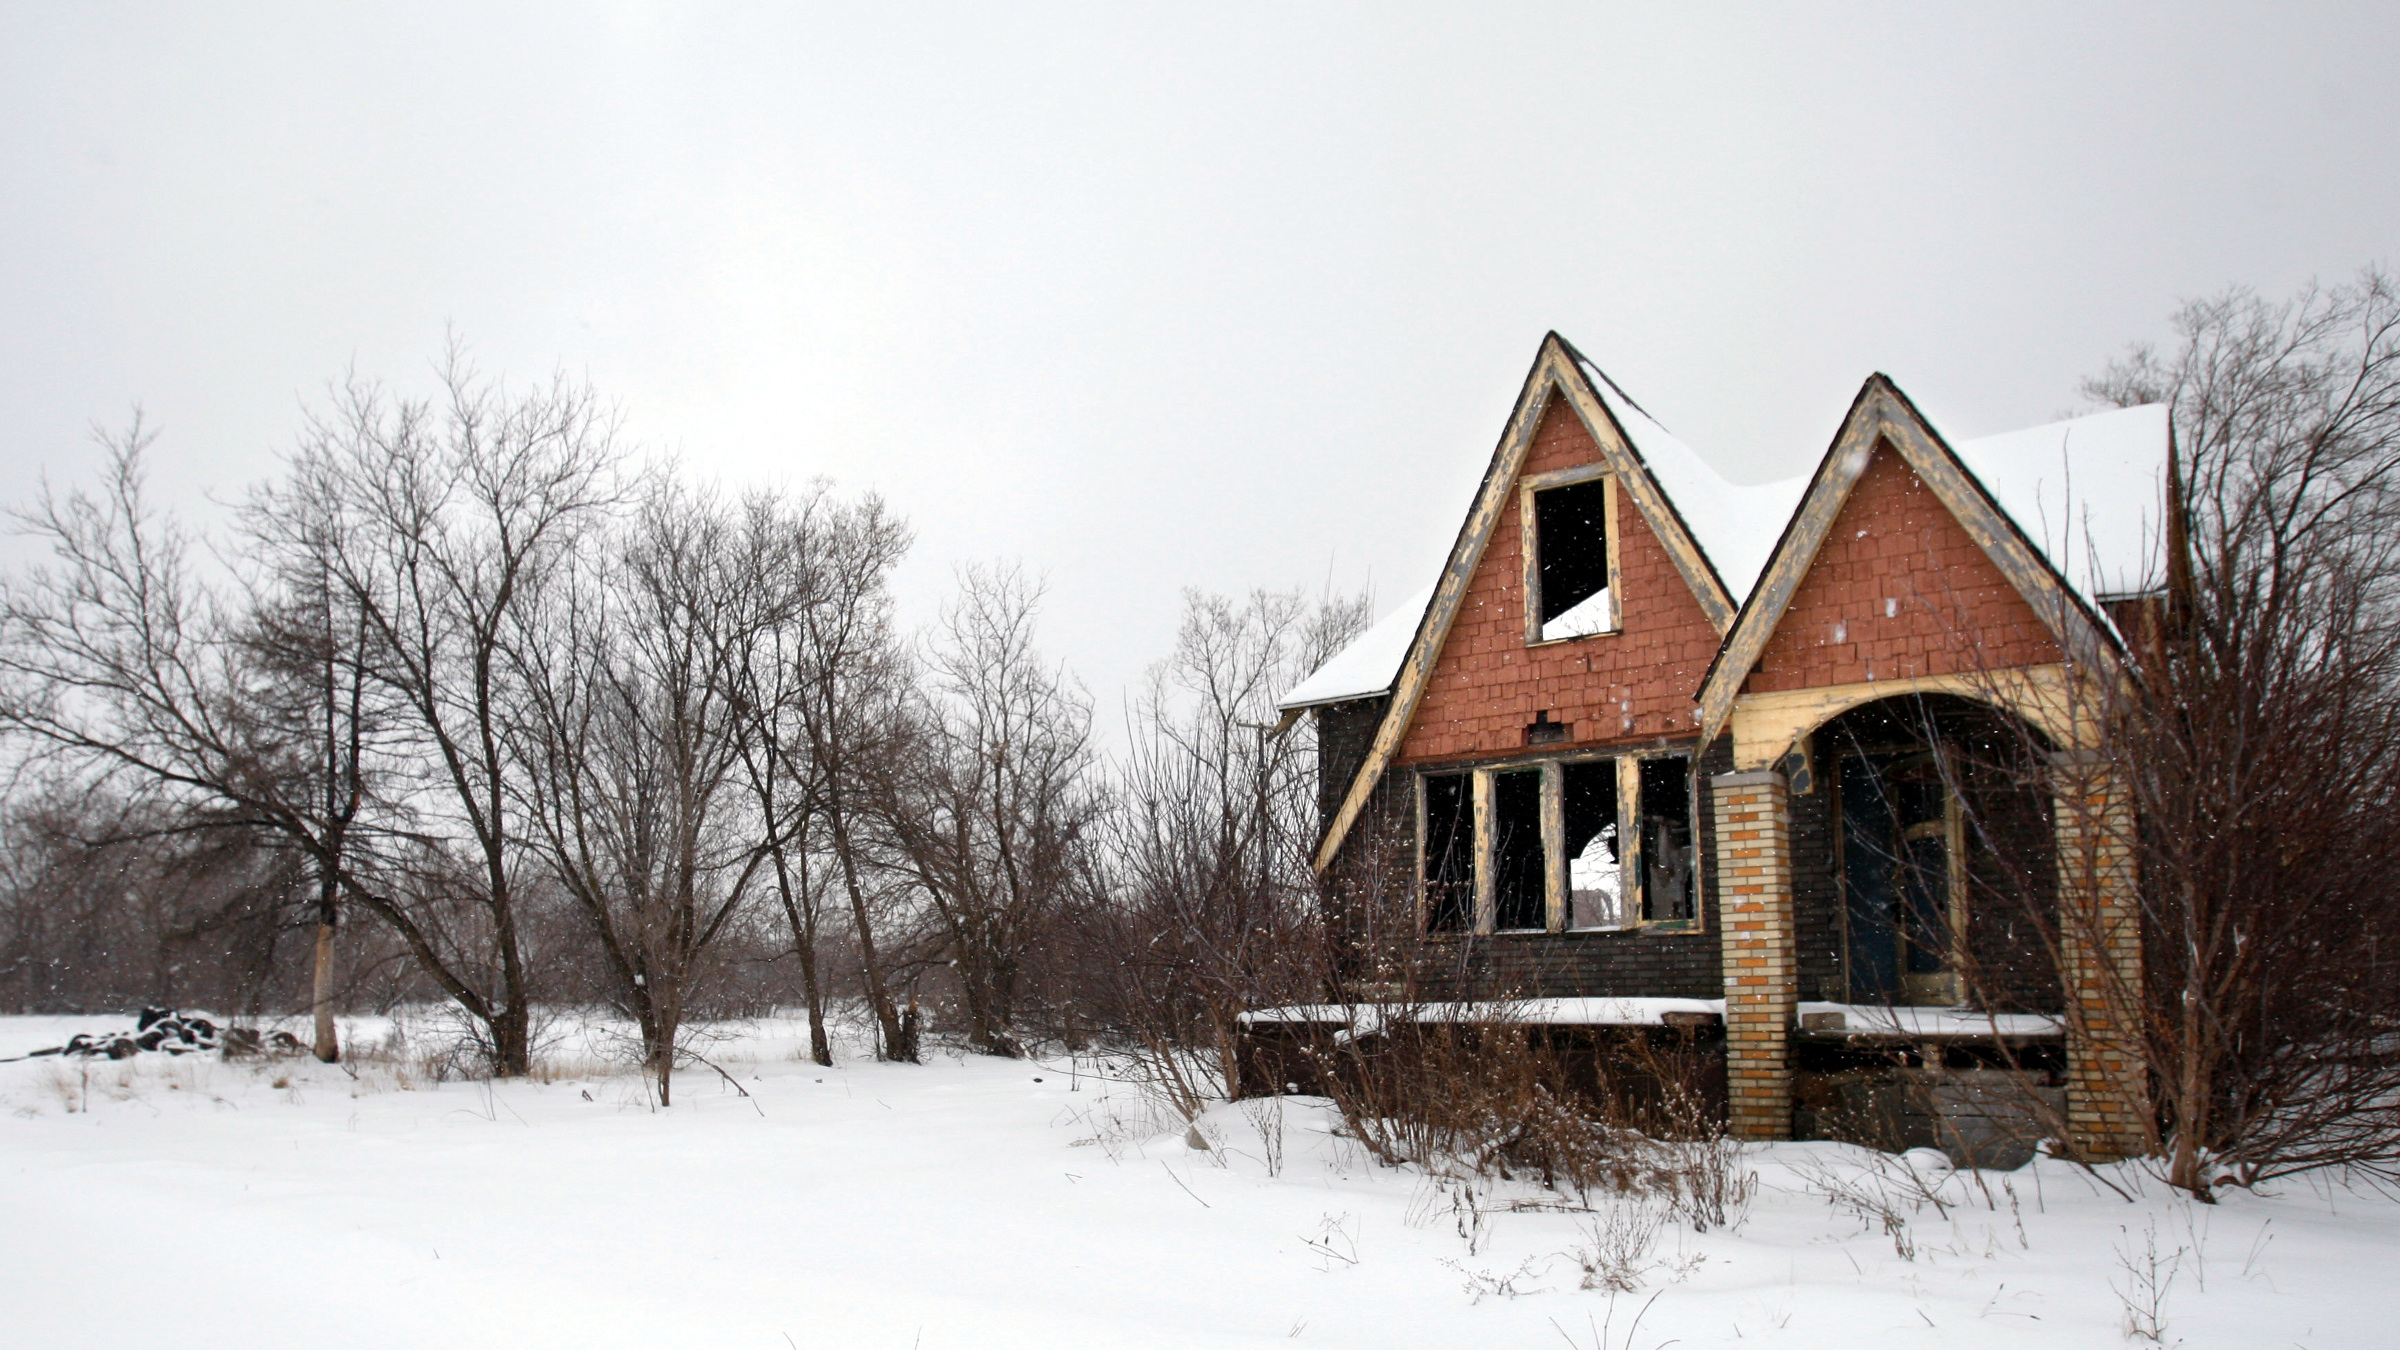 A vacant house near City Airport is seen Feb. 23, 2010 in Detroit. After decades of decline that gutted many once-vibrant neighborhoods, Detroit is preparing a radical renewal effort on a scale never attempted in this country: returning a large swath of the city to fields or farmland, much like it was in the middle of the 19th century. Under plans now being refined, demolition crews would move through the most desolate and decayed areas of urban Detroit with building-chomping excavators, reducing houses to rubble.